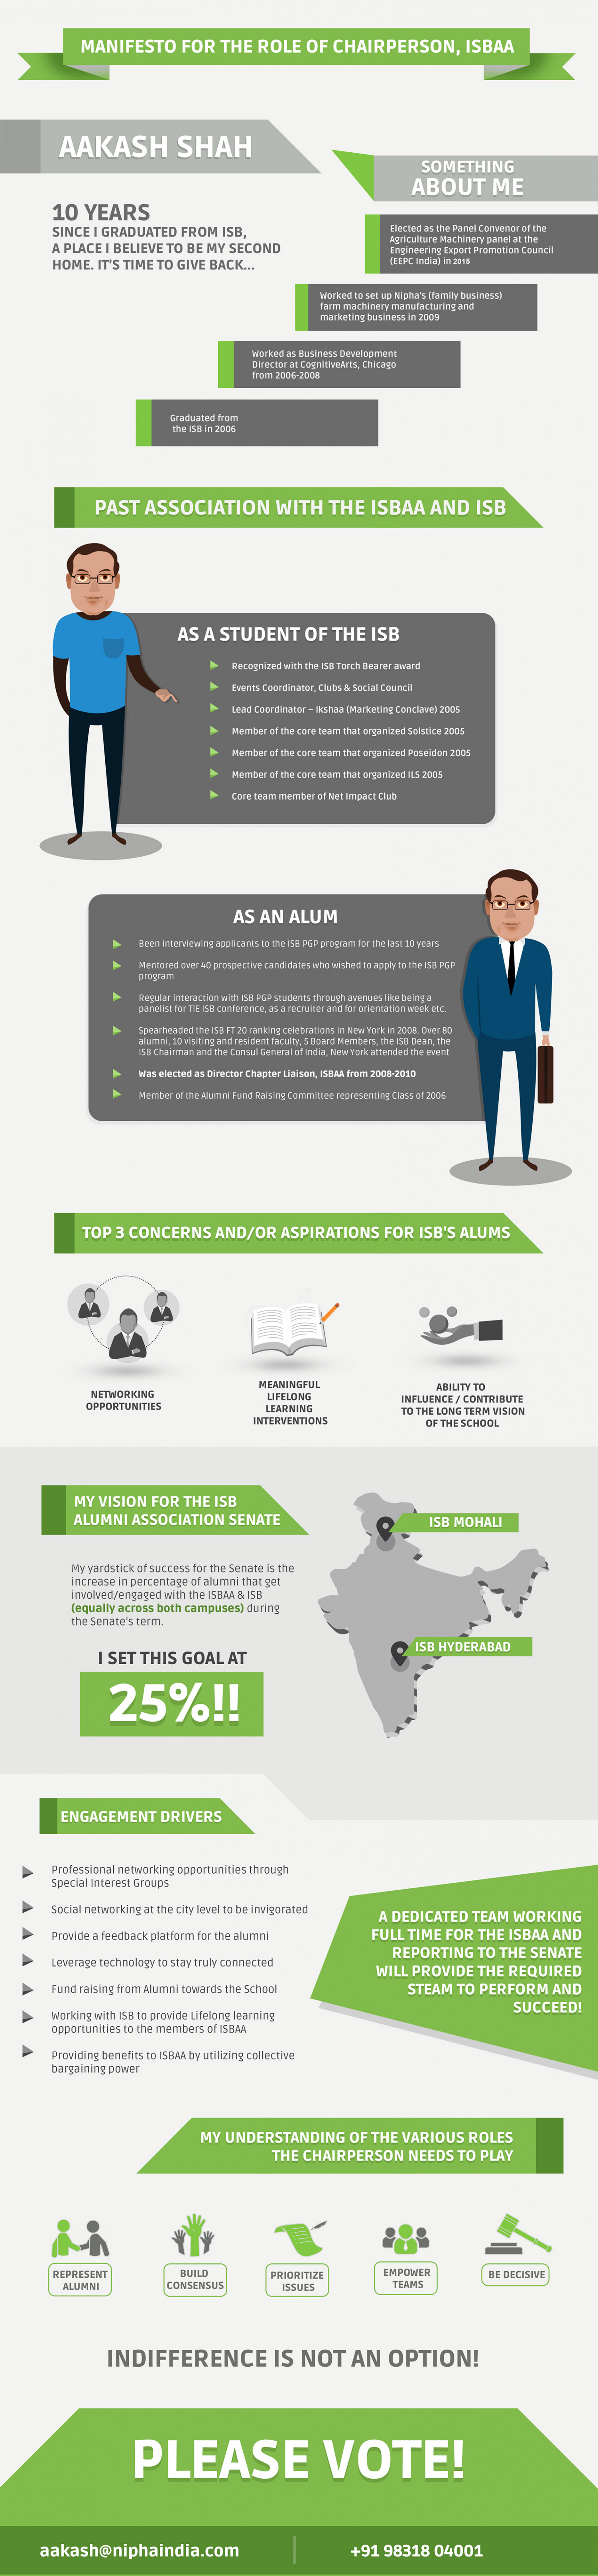 Manifesto For The Role Of Chairperson Infographic